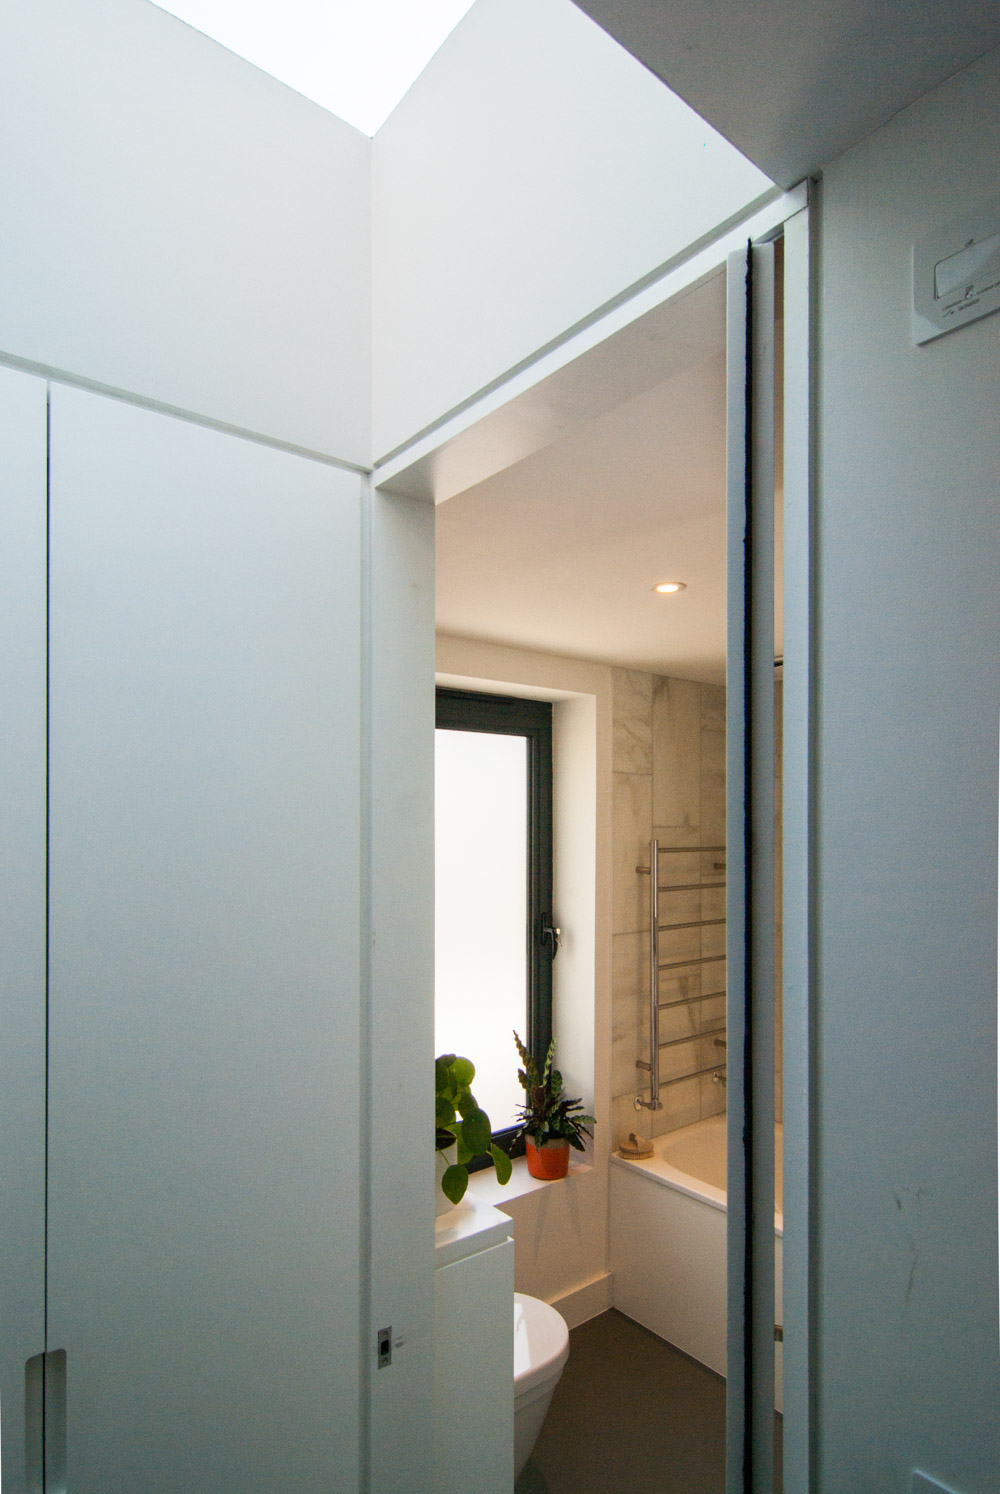 Full height pivot door by large storage in the hallway.